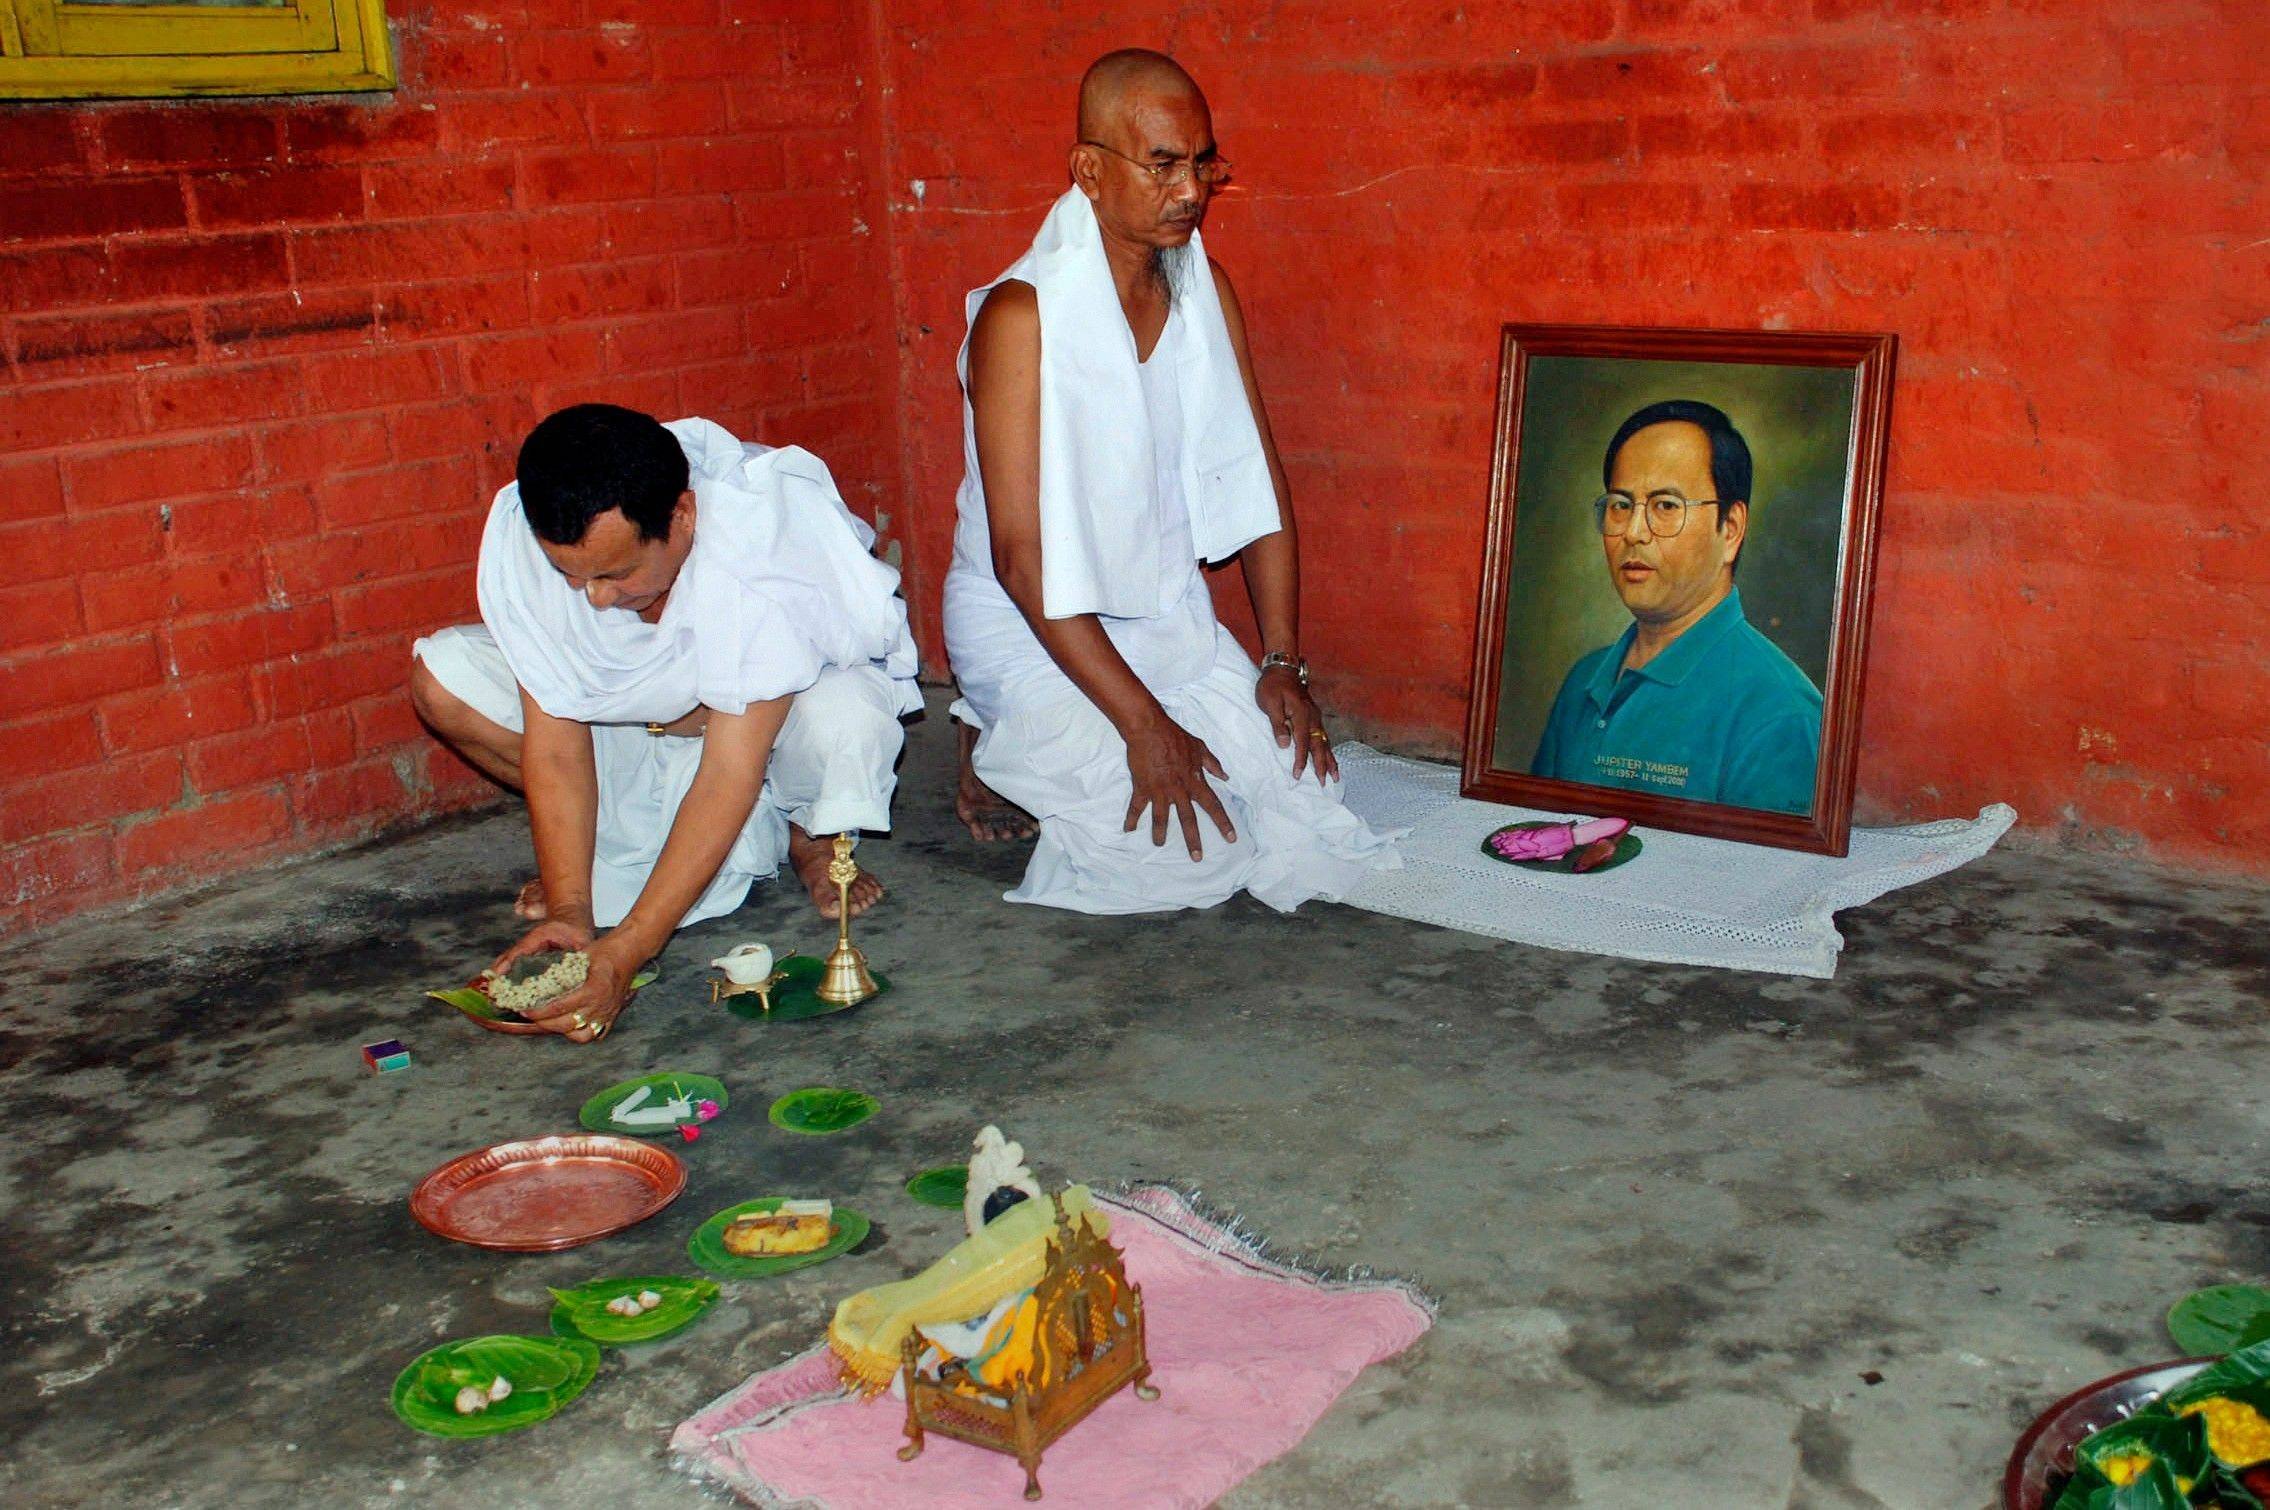 Family members offer prayers during a memorial service for Jupiter Yambem, shown in the photo, at his ancestral home in Imphal, in northeastern Indian state of Manipur, Sunday, Sept. 11, 2011. Around 100 family members and close friends gathered early Sunday to pay their respect to Yamben, who was killed in the attack on the World Trade Center. He was a banquet manager in Windows on the World restaurant atop one of the towers.